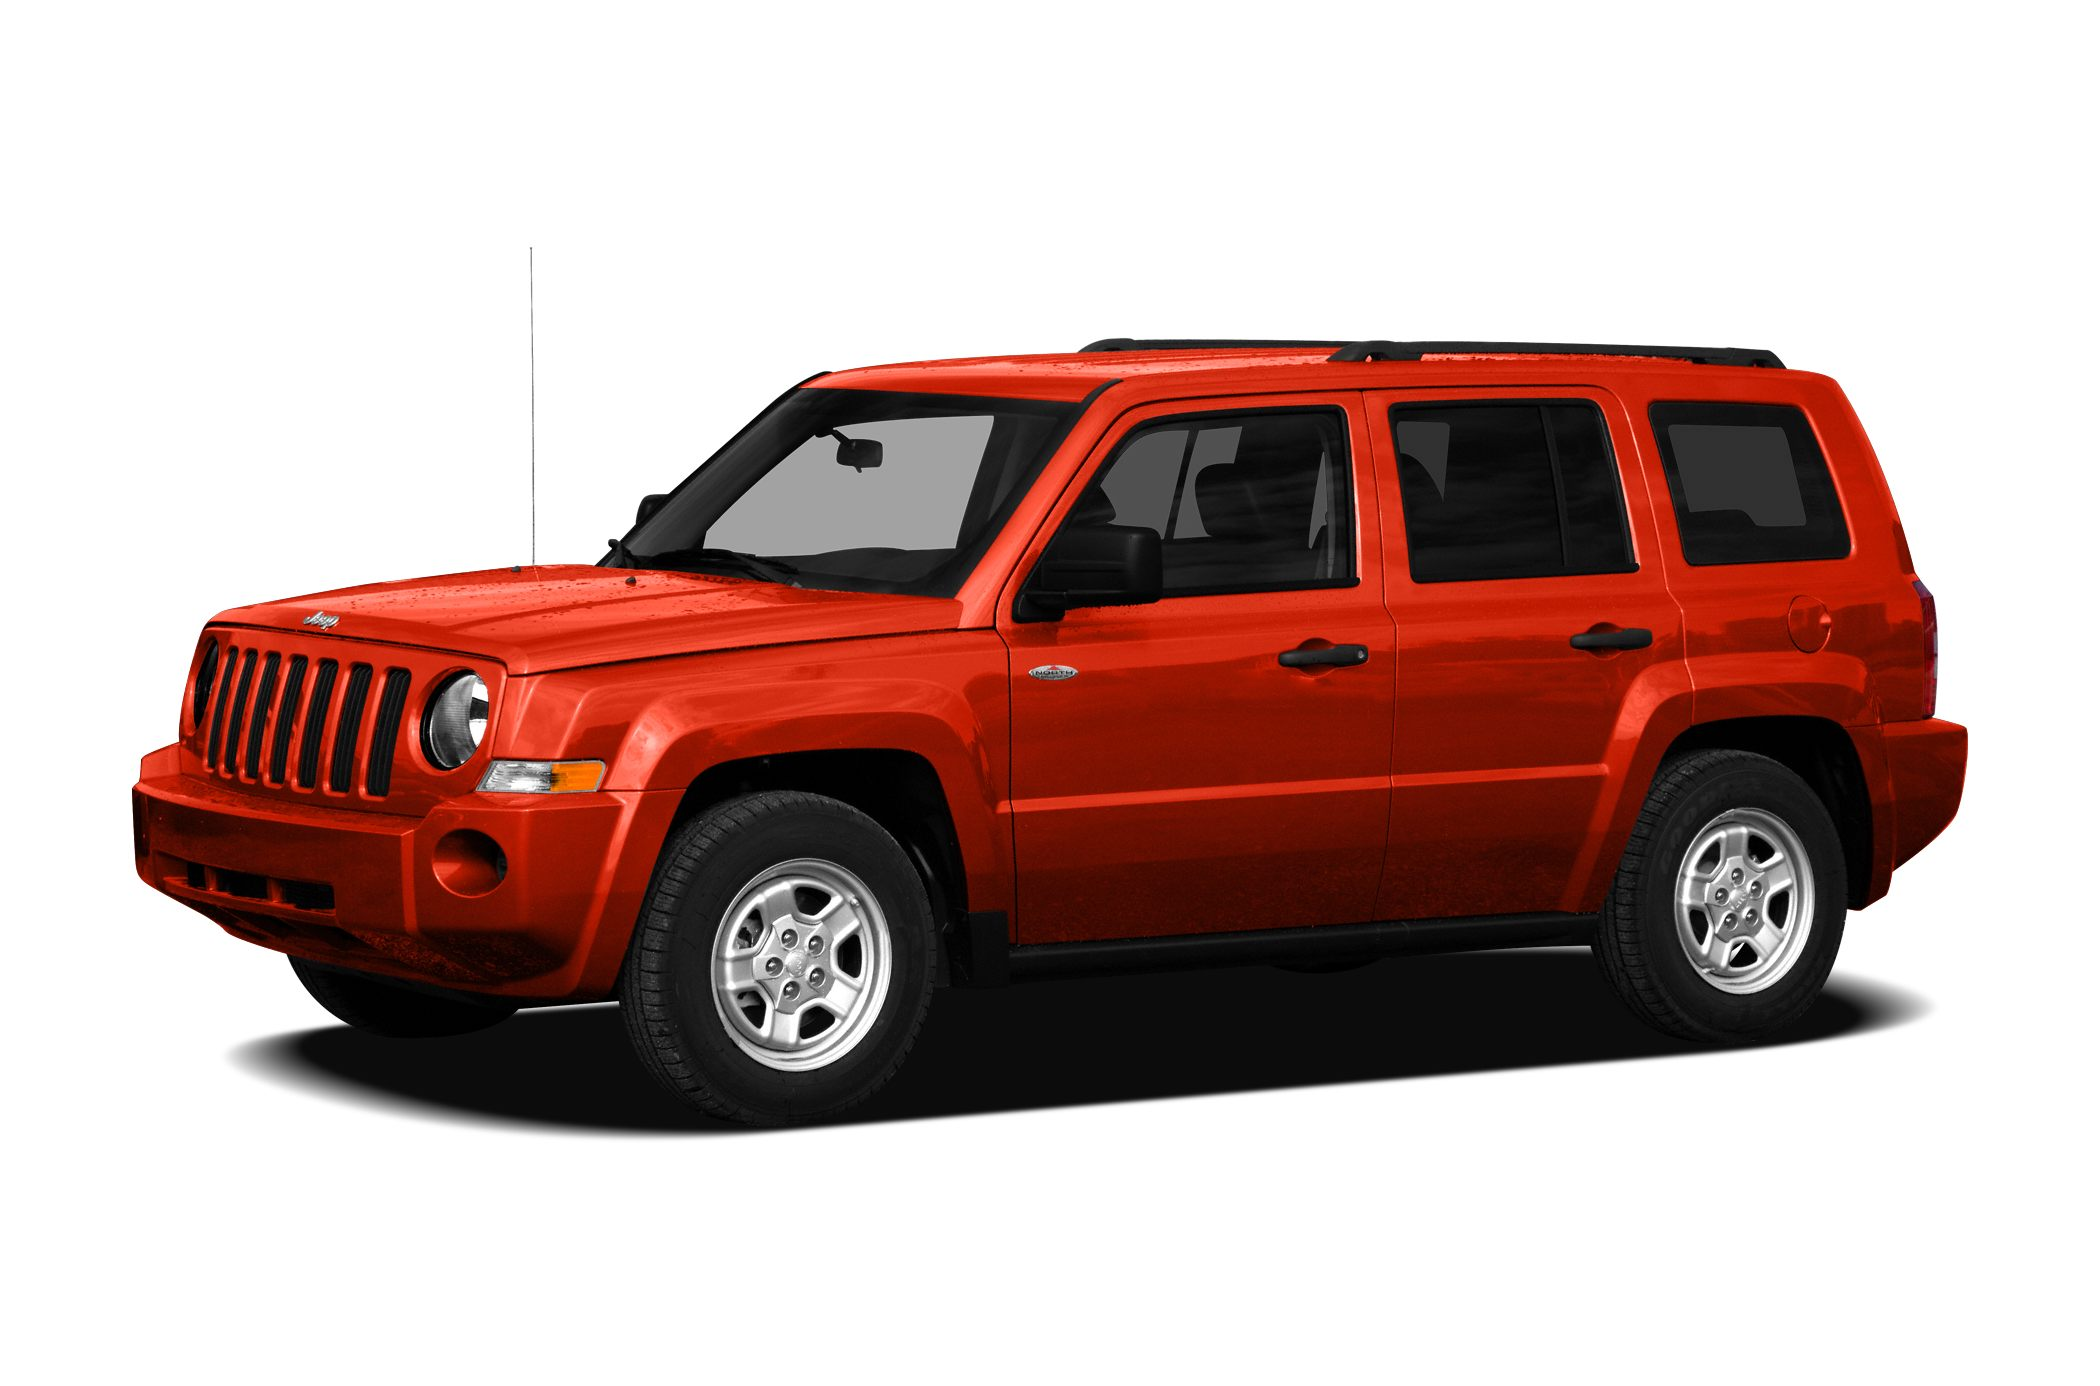 2009 Jeep Patriot Sport SUV for sale in Chicago for $6,995 with 114,568 miles.